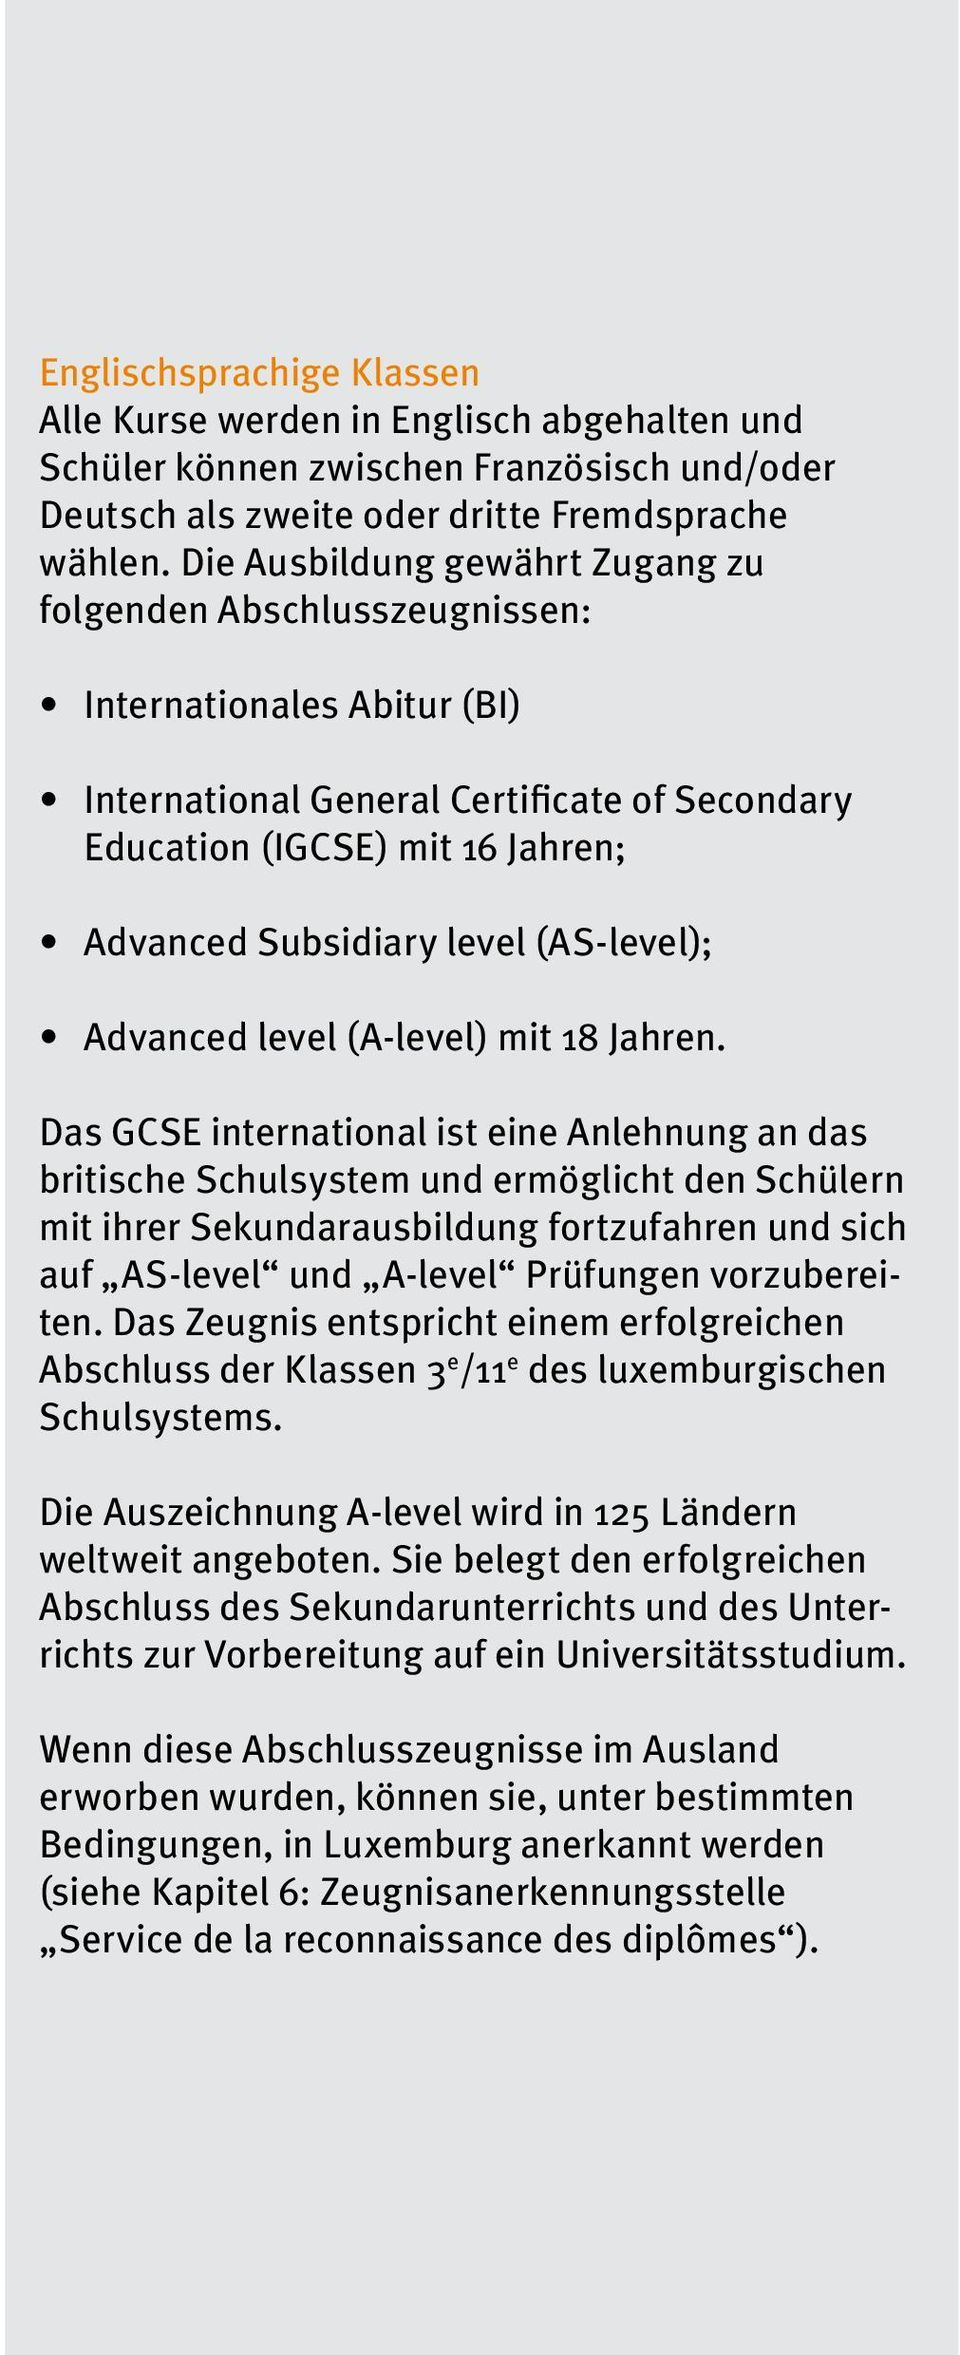 (AS-level); Advanced level (A-level) mit 18 Jahren.